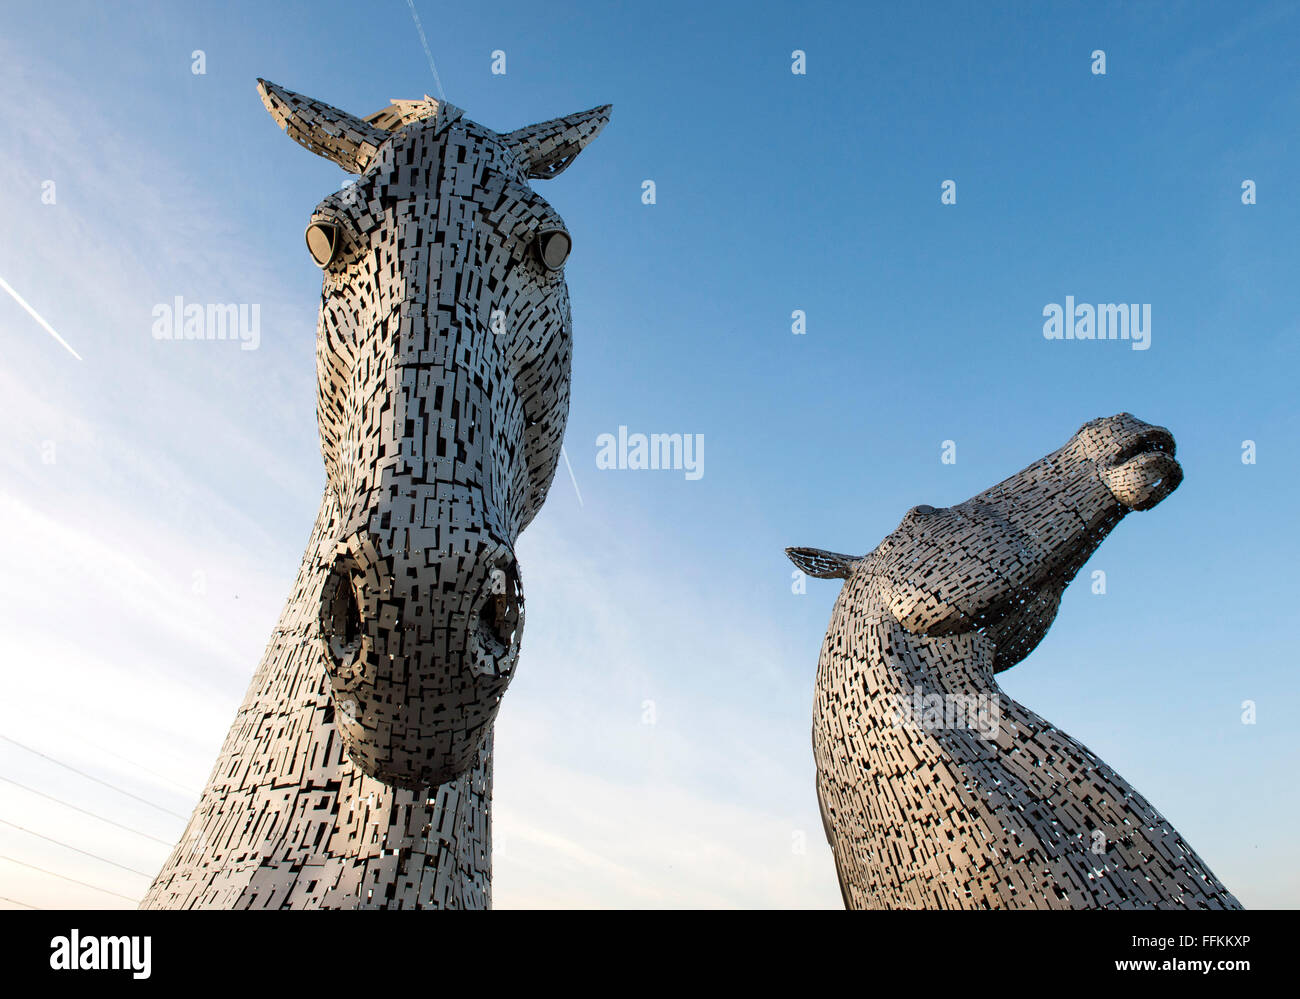 2nd February 2016, The Kelpies sculpture by Andy Scott, two giant horses heads in stainless steel, The Helix, Falkirk - Stock Image